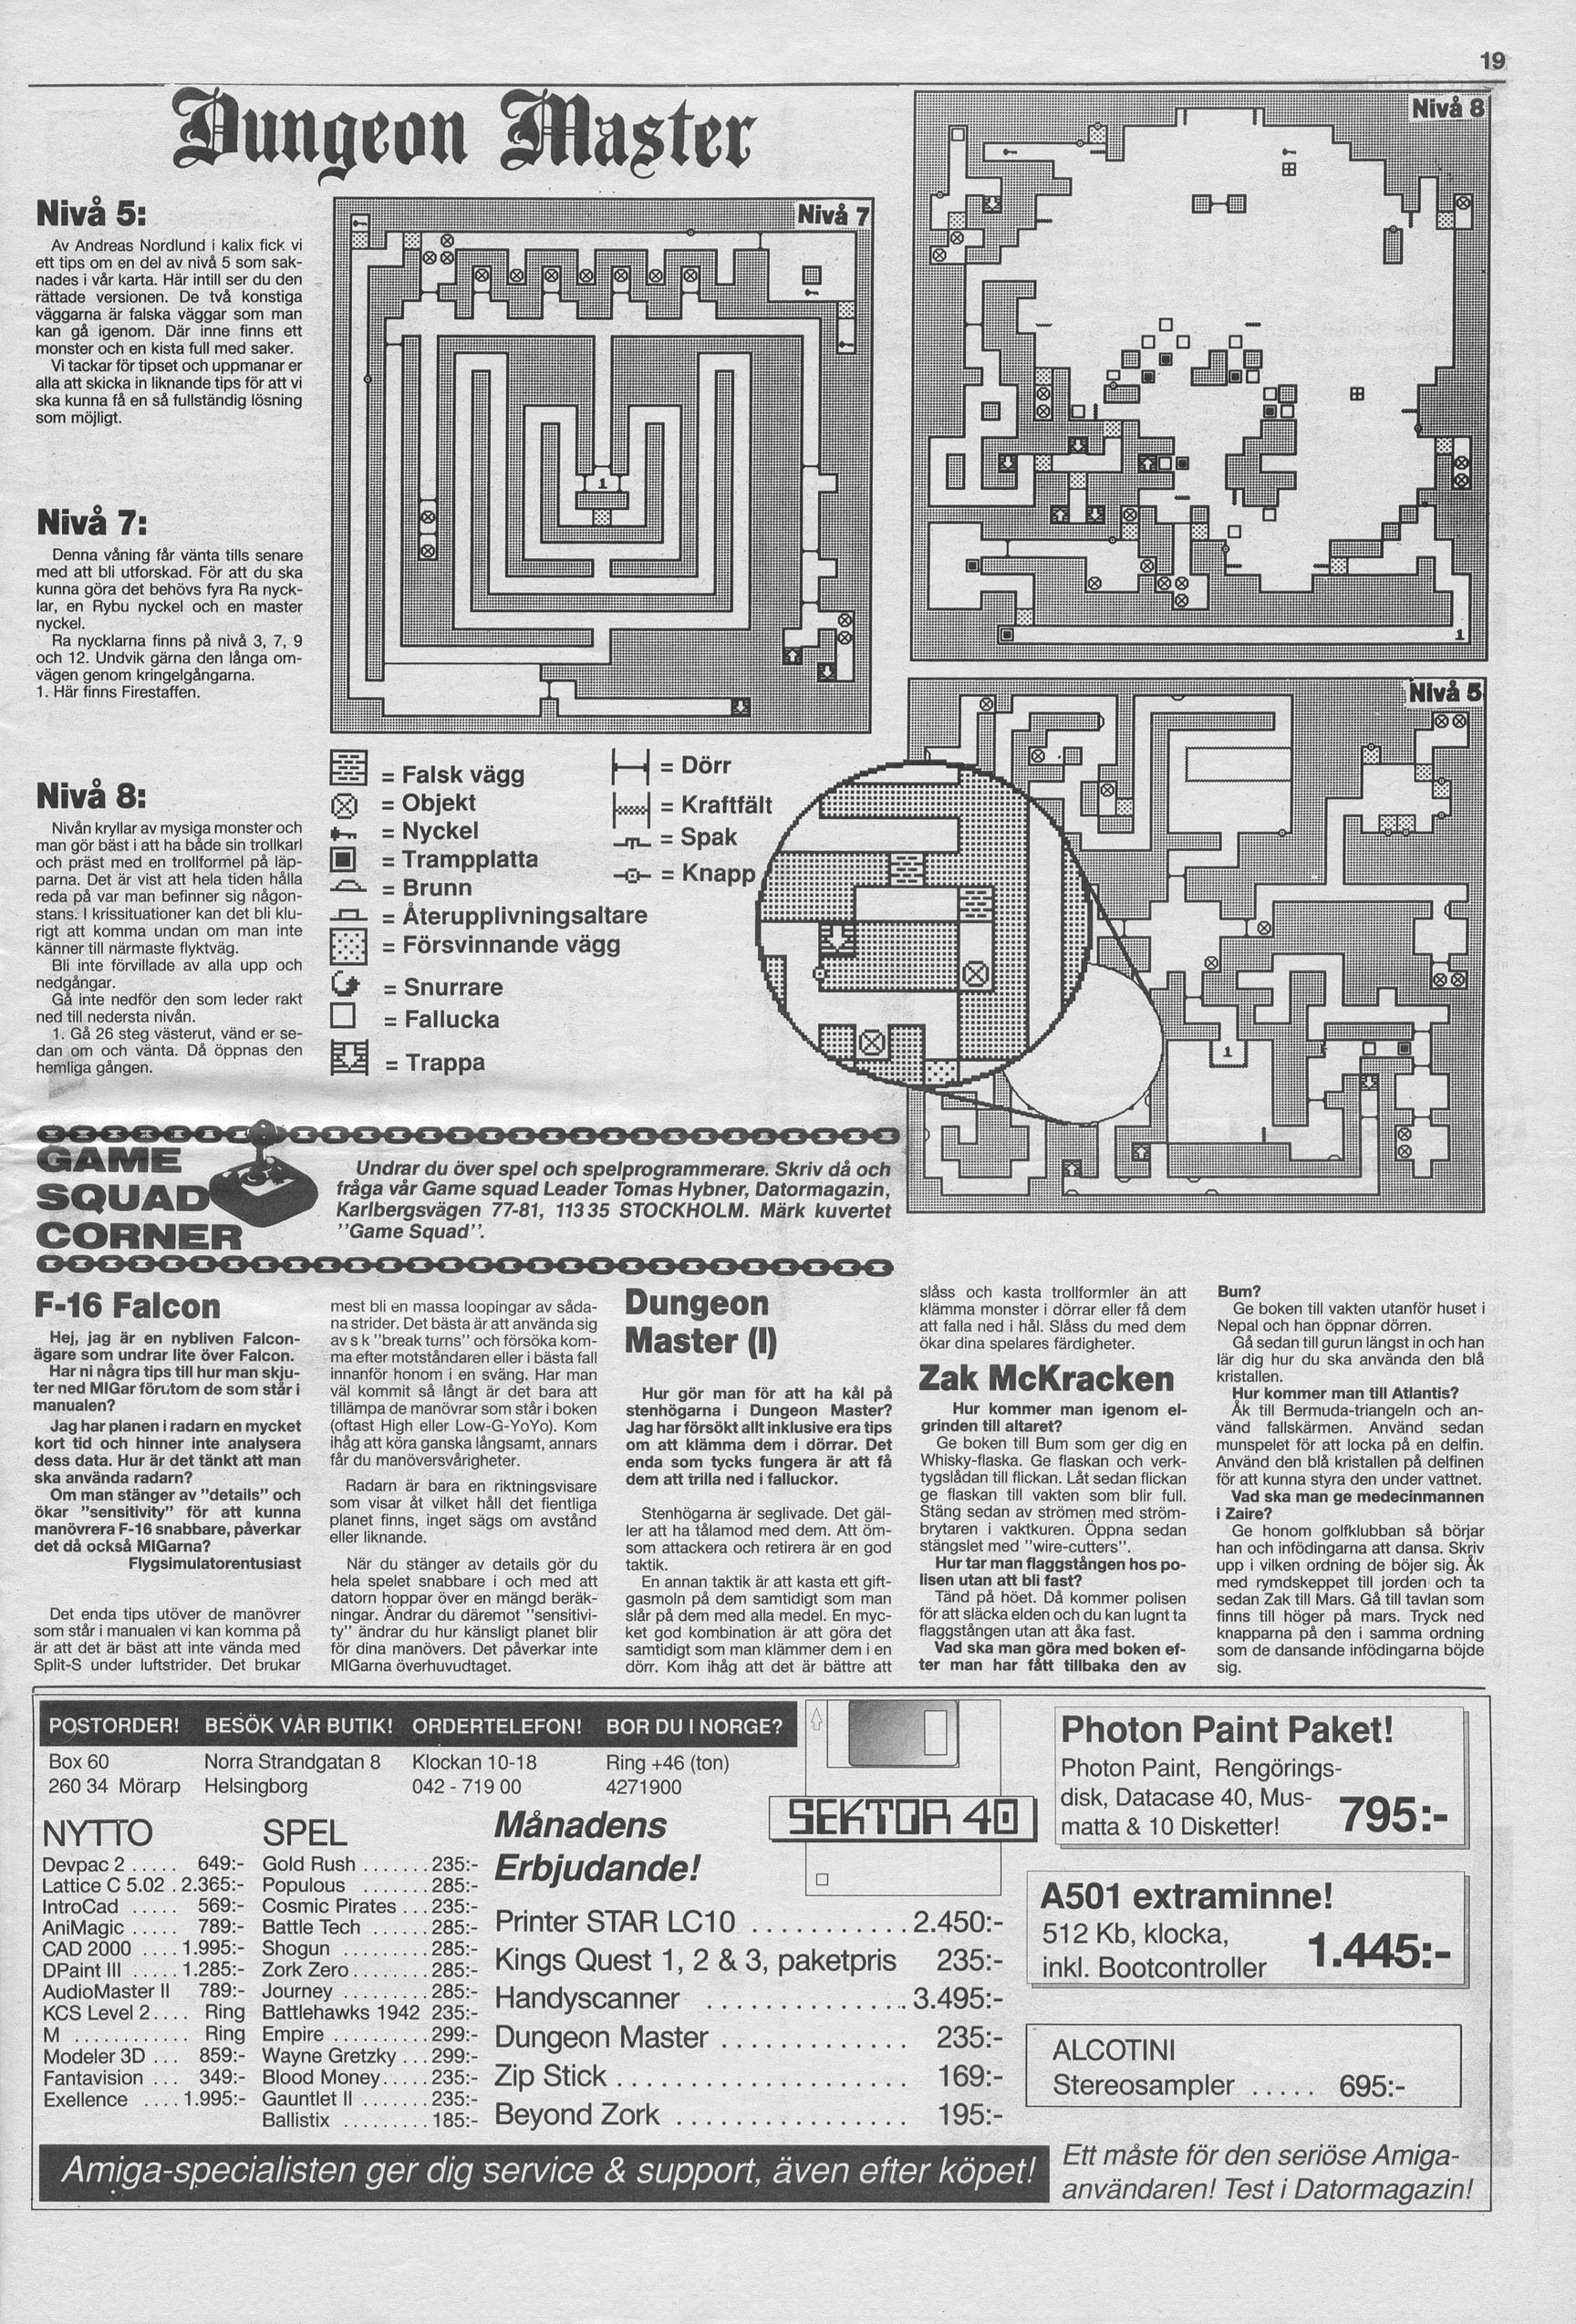 Dungeon Master Hints published in Swedish magazine 'Datormagazin', Vol. 1989 No. 8, June 1989, Page 19